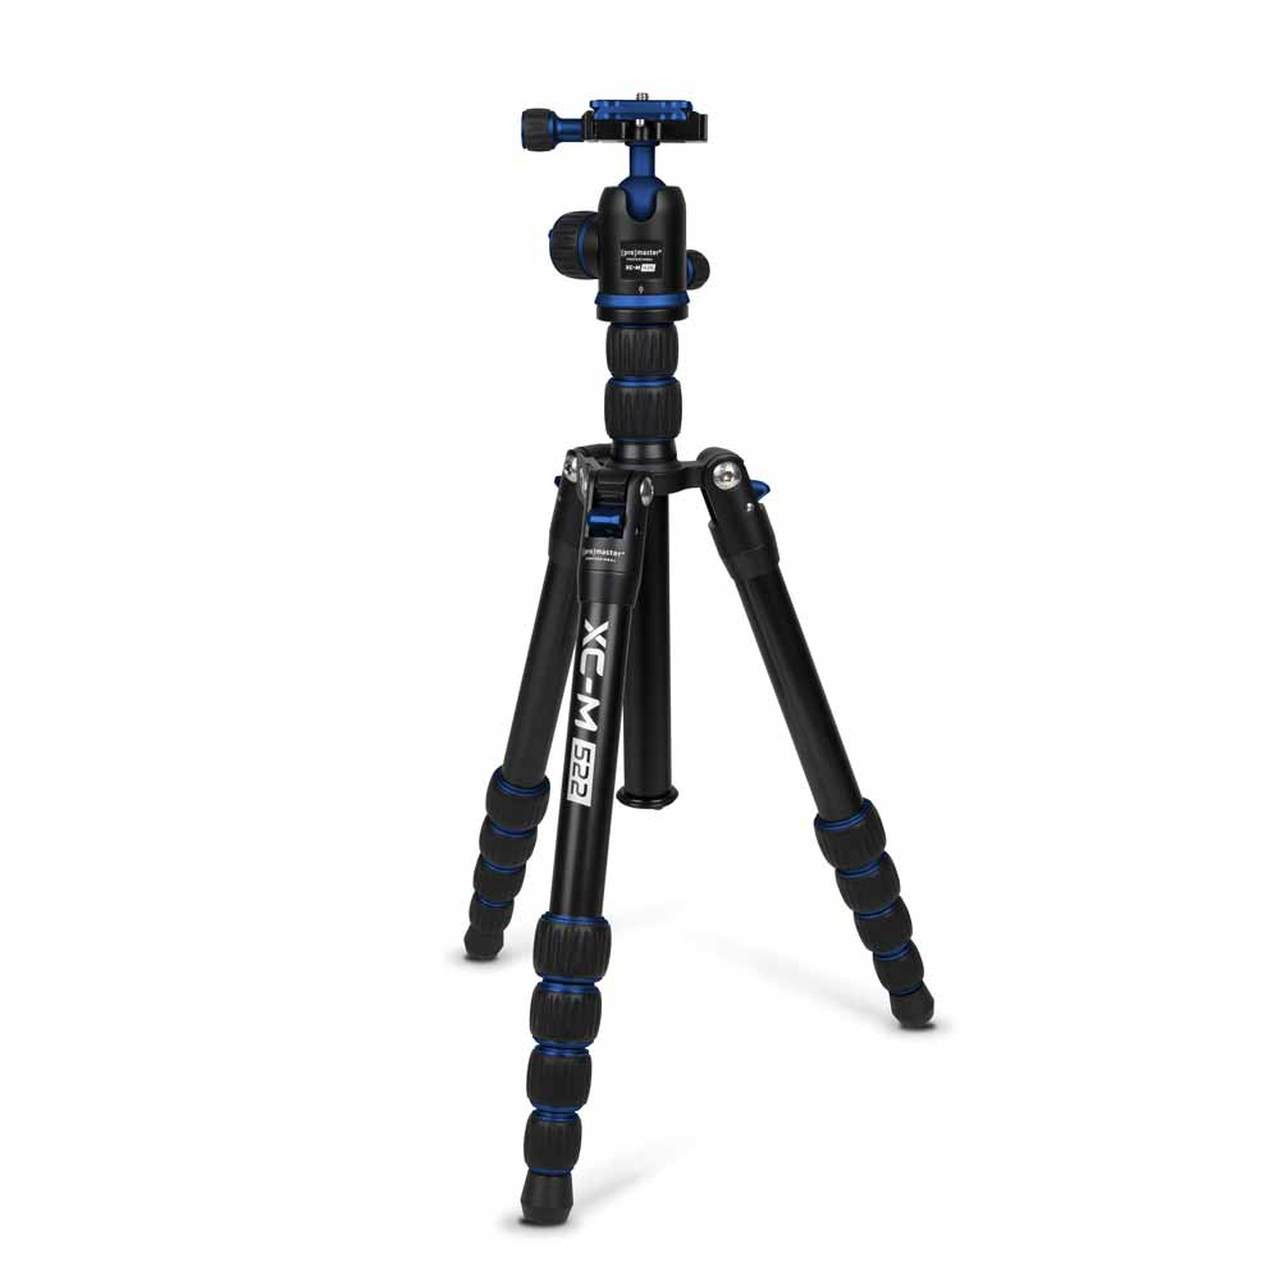 Promaster 4070 XC-M 522K Professional  Tripod (Black) - Kit with Ball Head